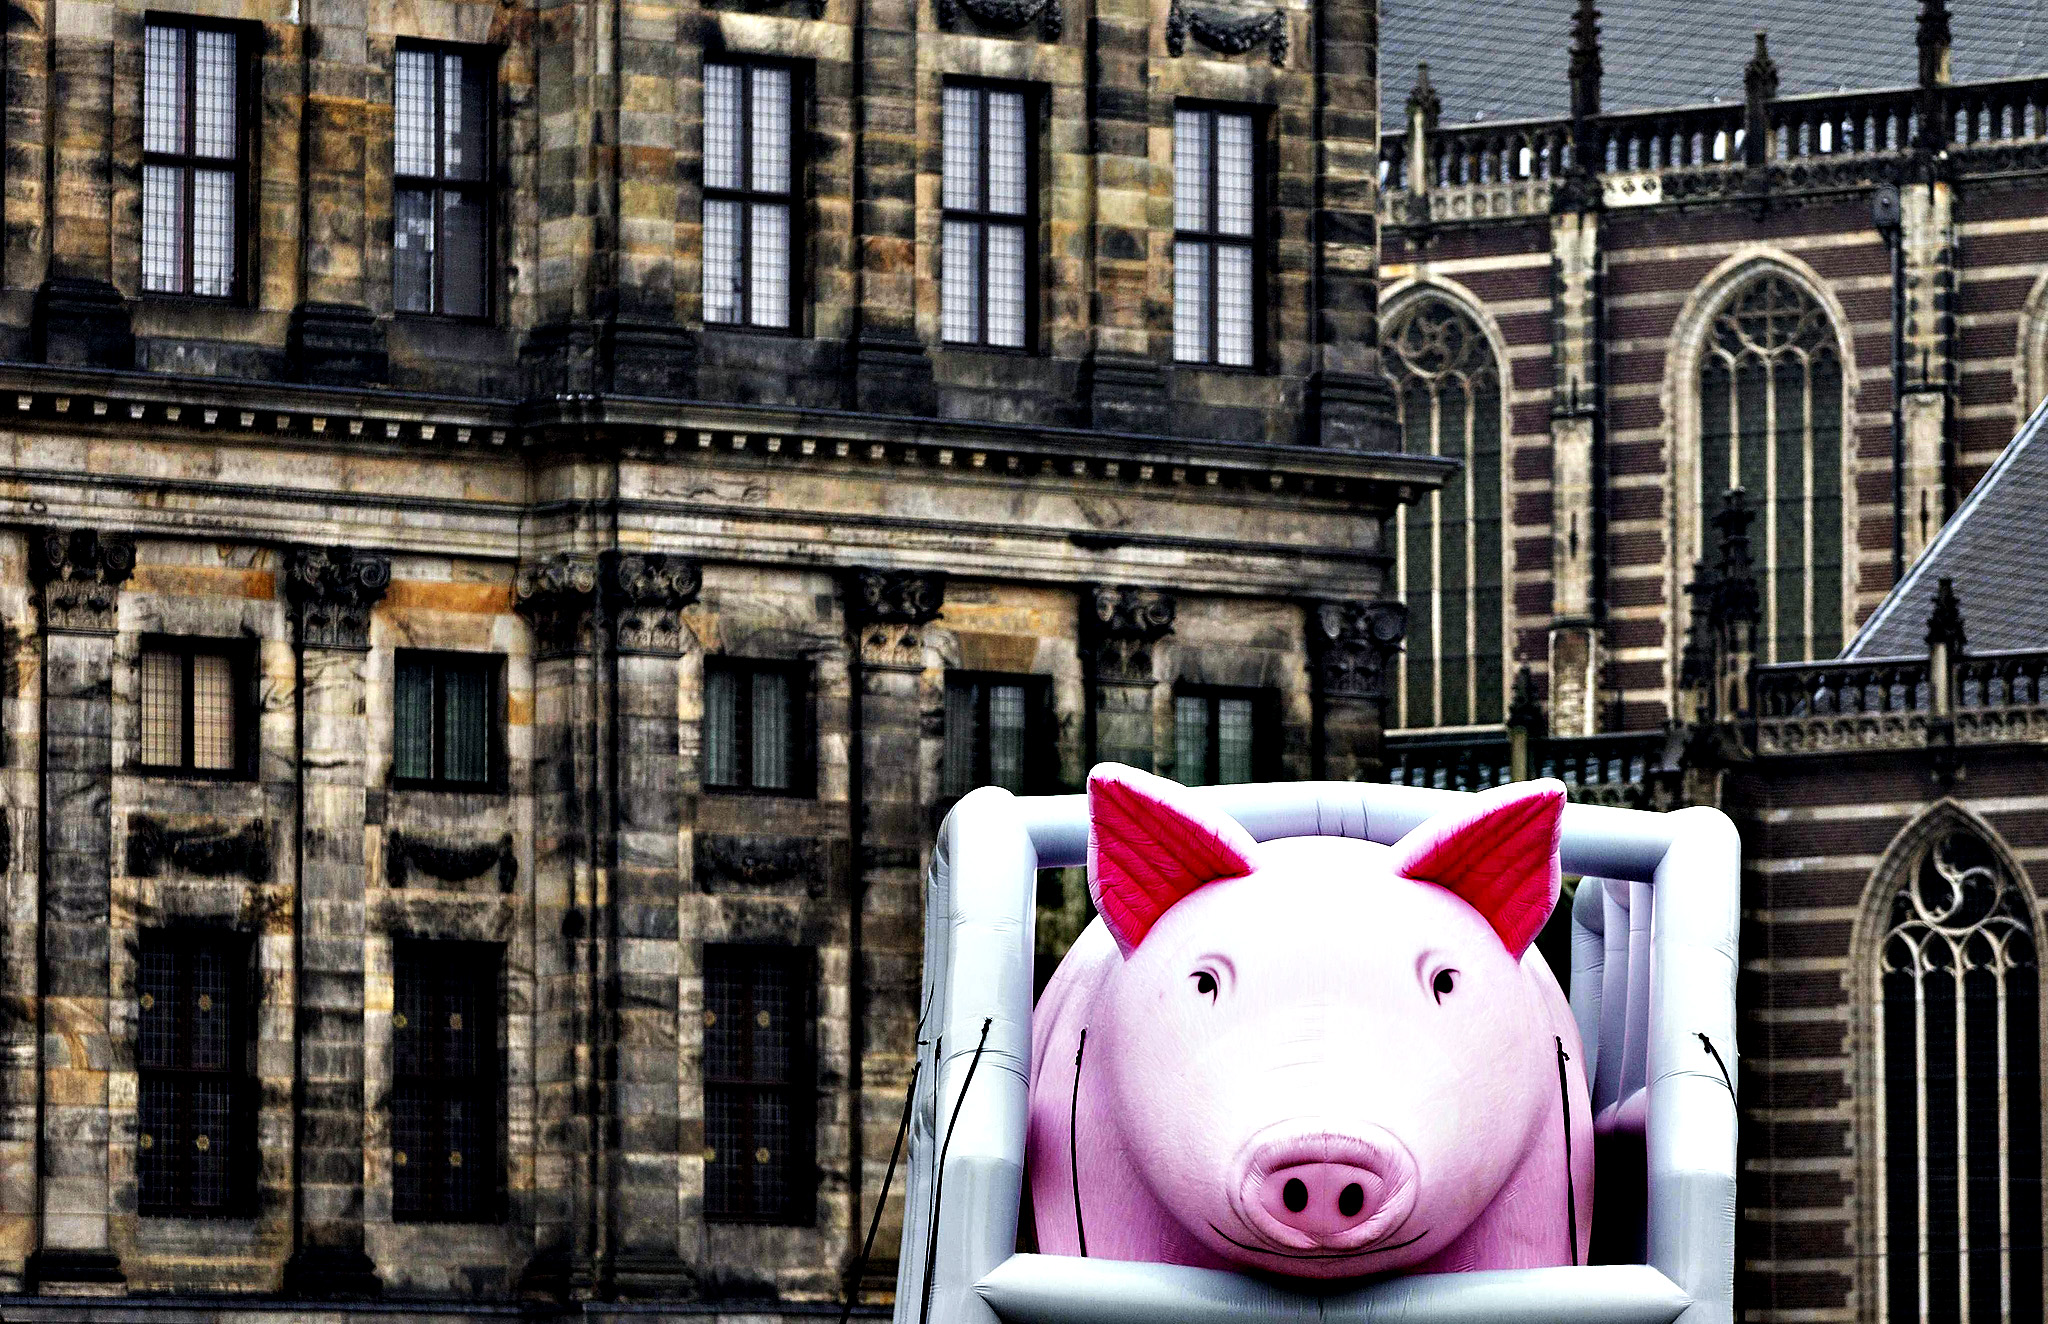 A huge inflatable pig is placed on the Dam square during a protest against illegal practicing in European pig farming, in Amsterdam, Netherlands, 12 November 2013. The actions is part of a international campaign of animal protection organization, Compassion in World Farming.